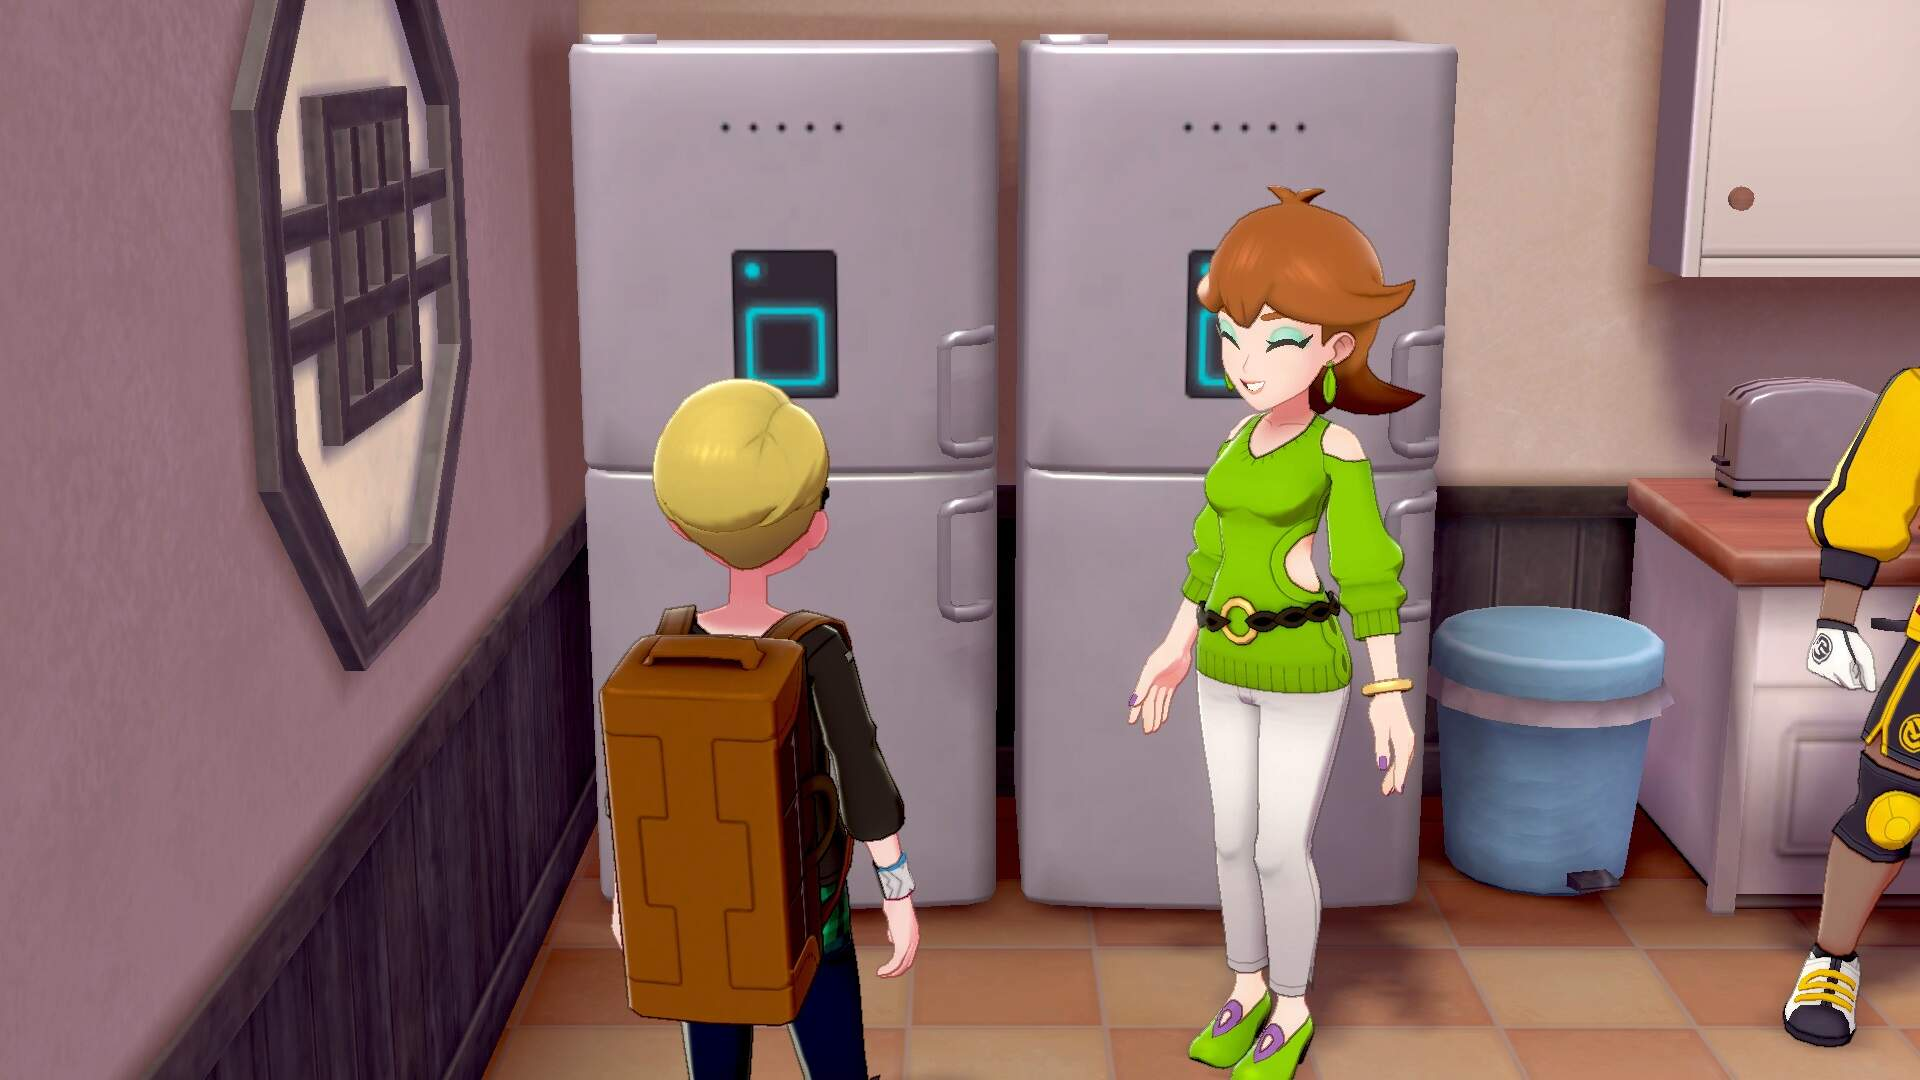 Pokemon Sword and Shield Isle of Armor DLC: How to Quickly Upgrade the Dojo